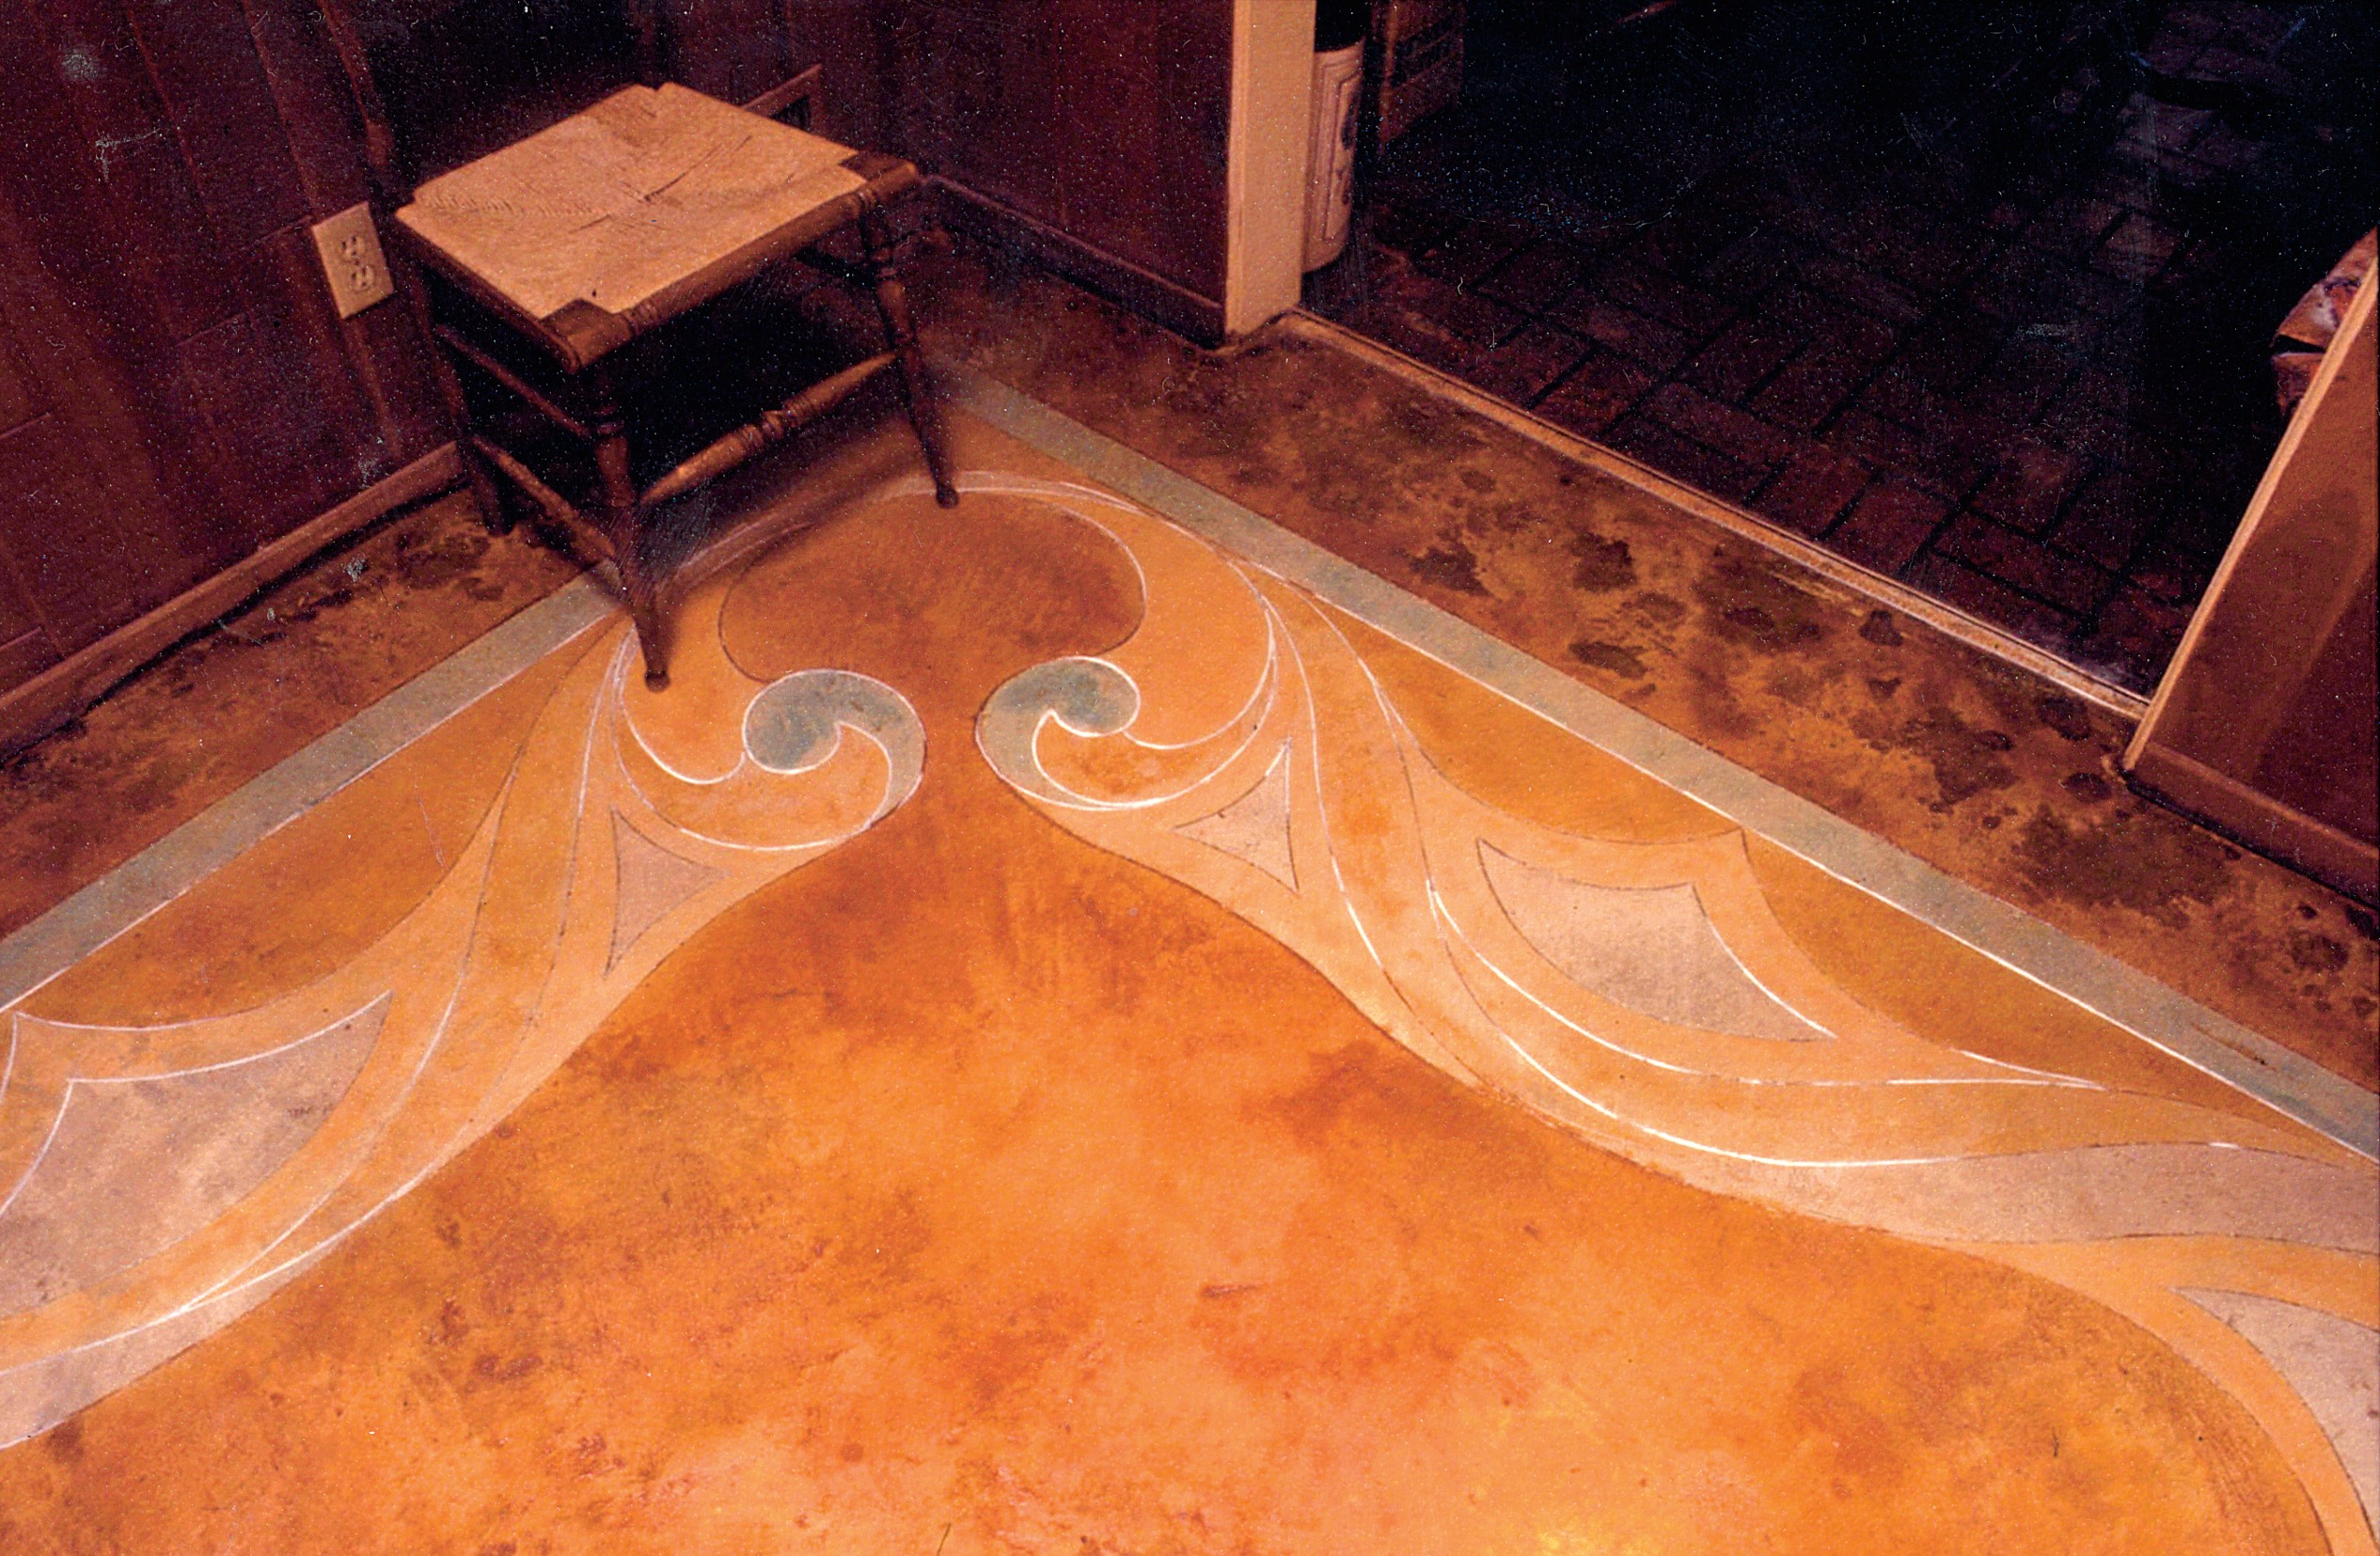 In this living room the concrete was cleared of tack strips and glue and then thoroughly cleaned. The lines and flowing curves were drawn freehand using green chalk.